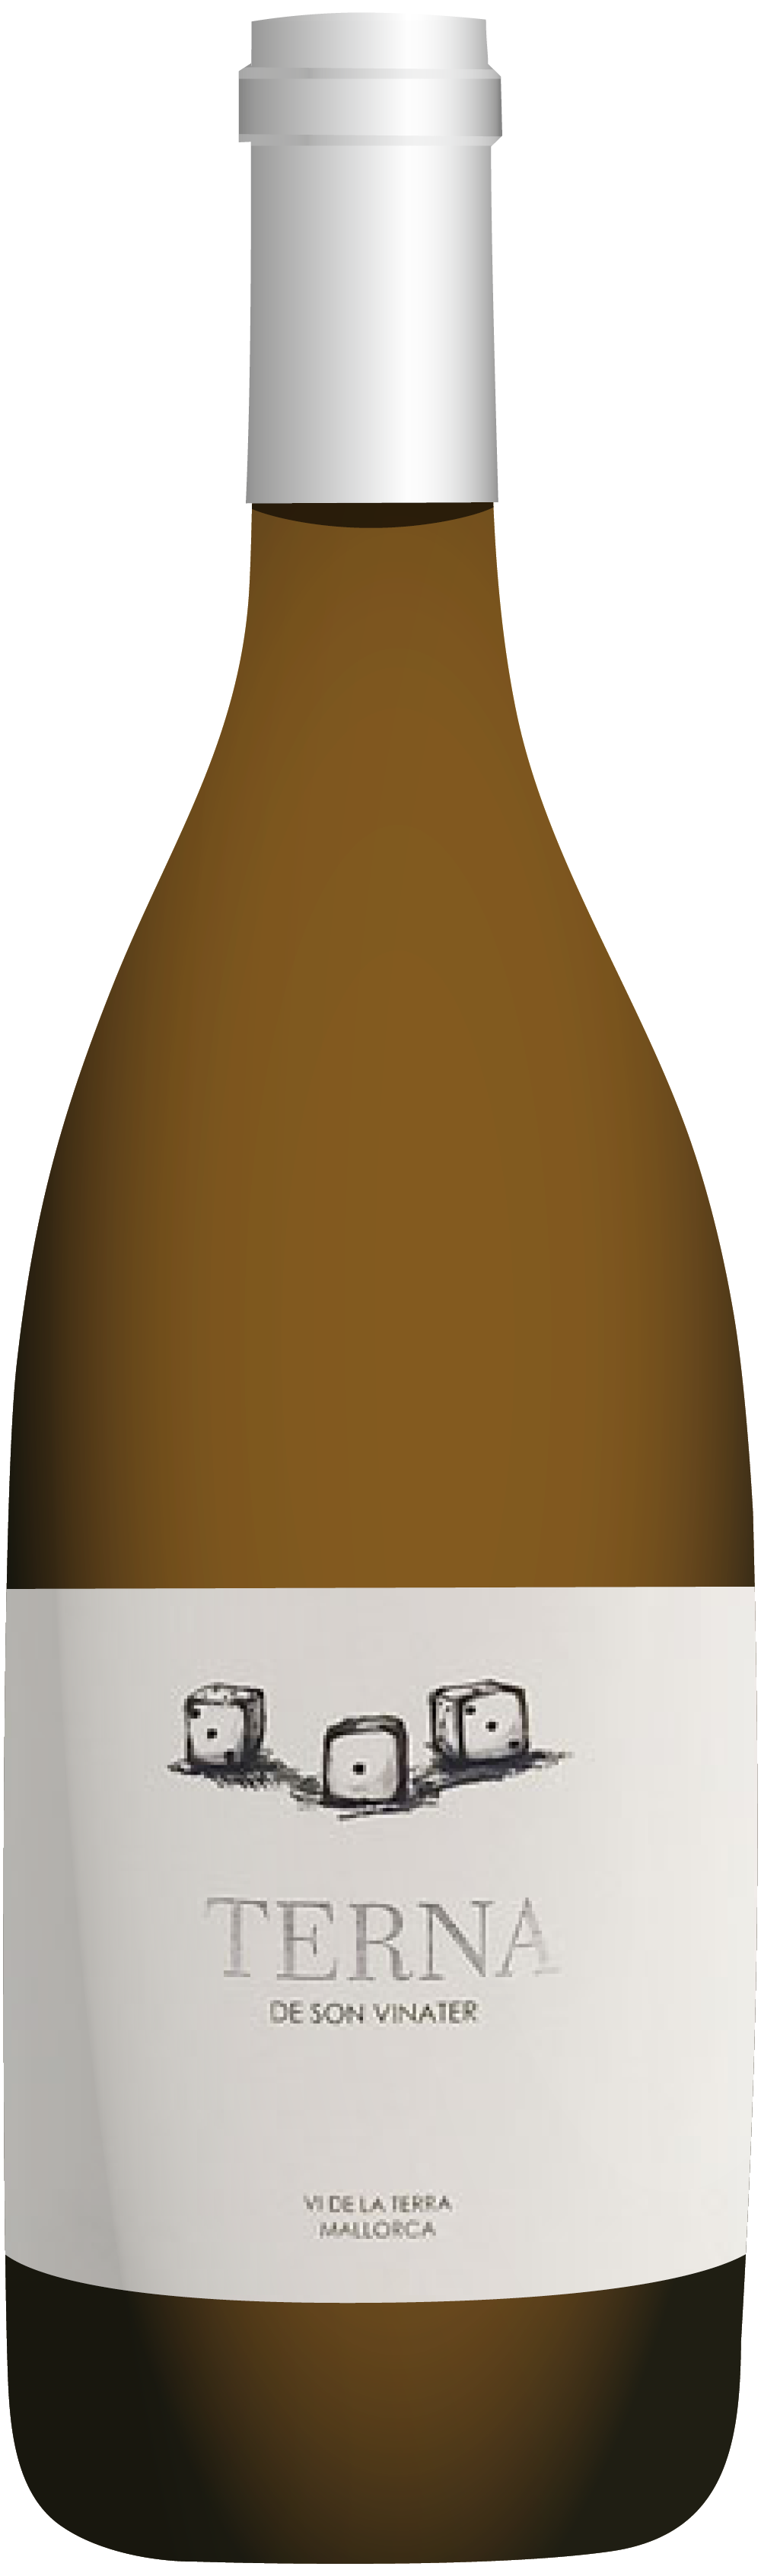 the natural wine company club march 2021 spain mesquida mora terna